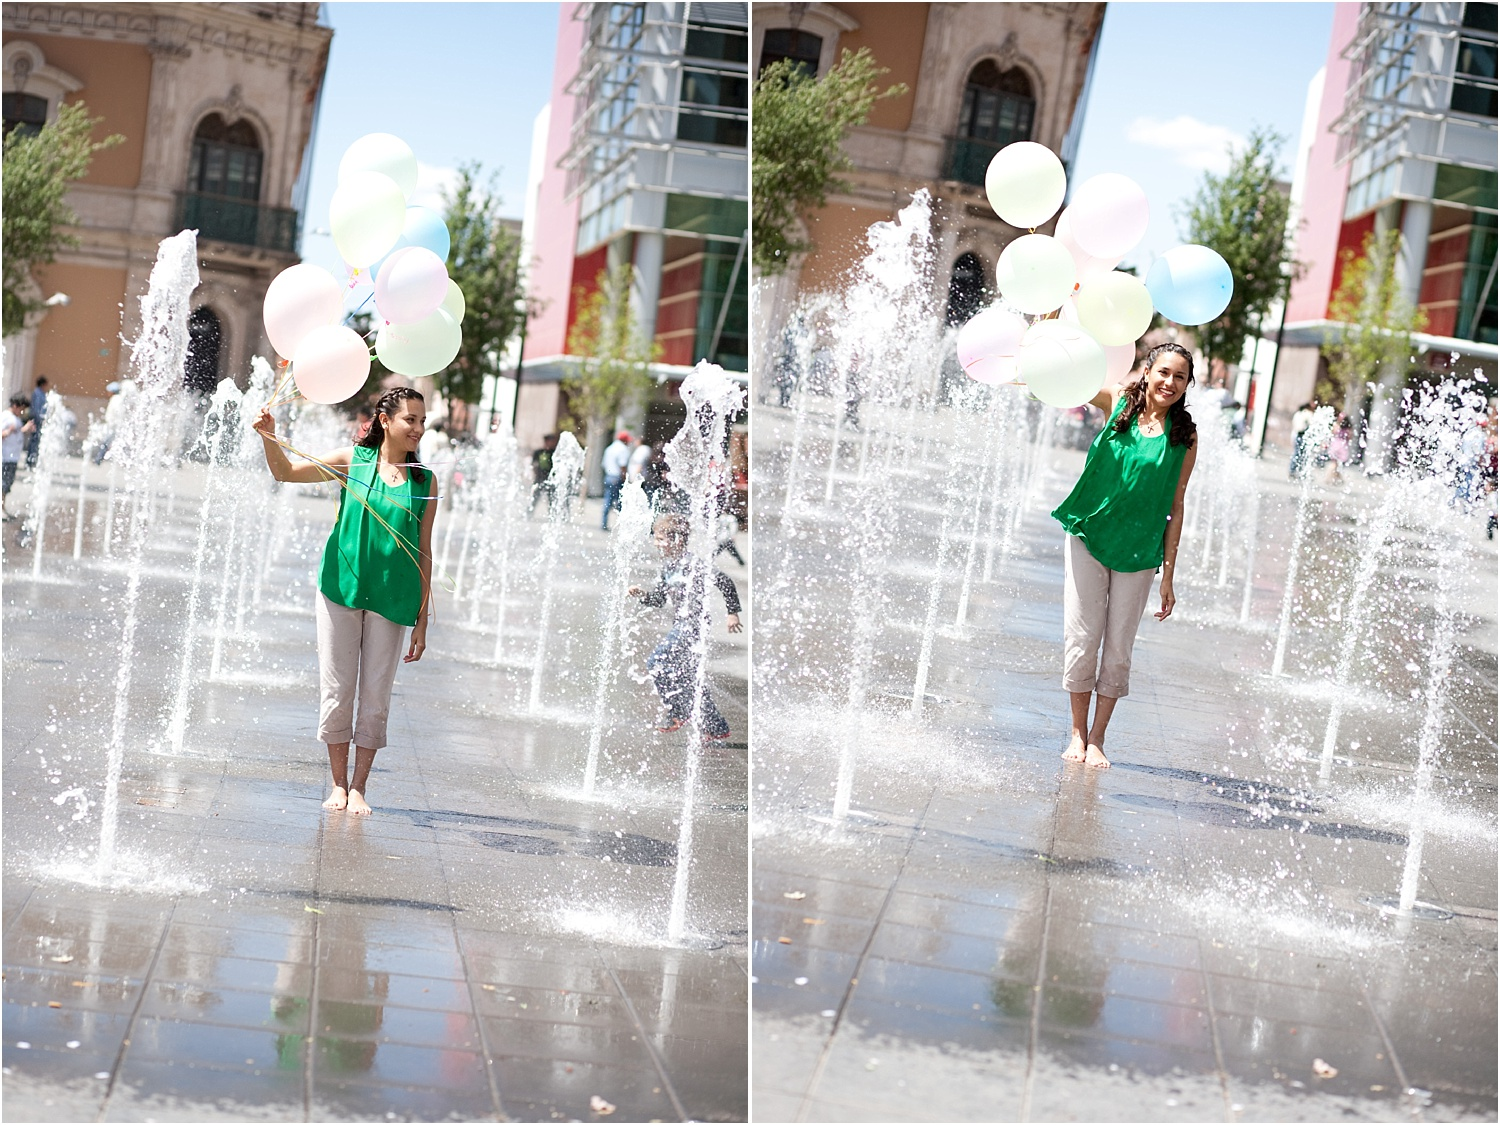 How to do Portrait Photography in Bright Midday Sun - girl with balloons